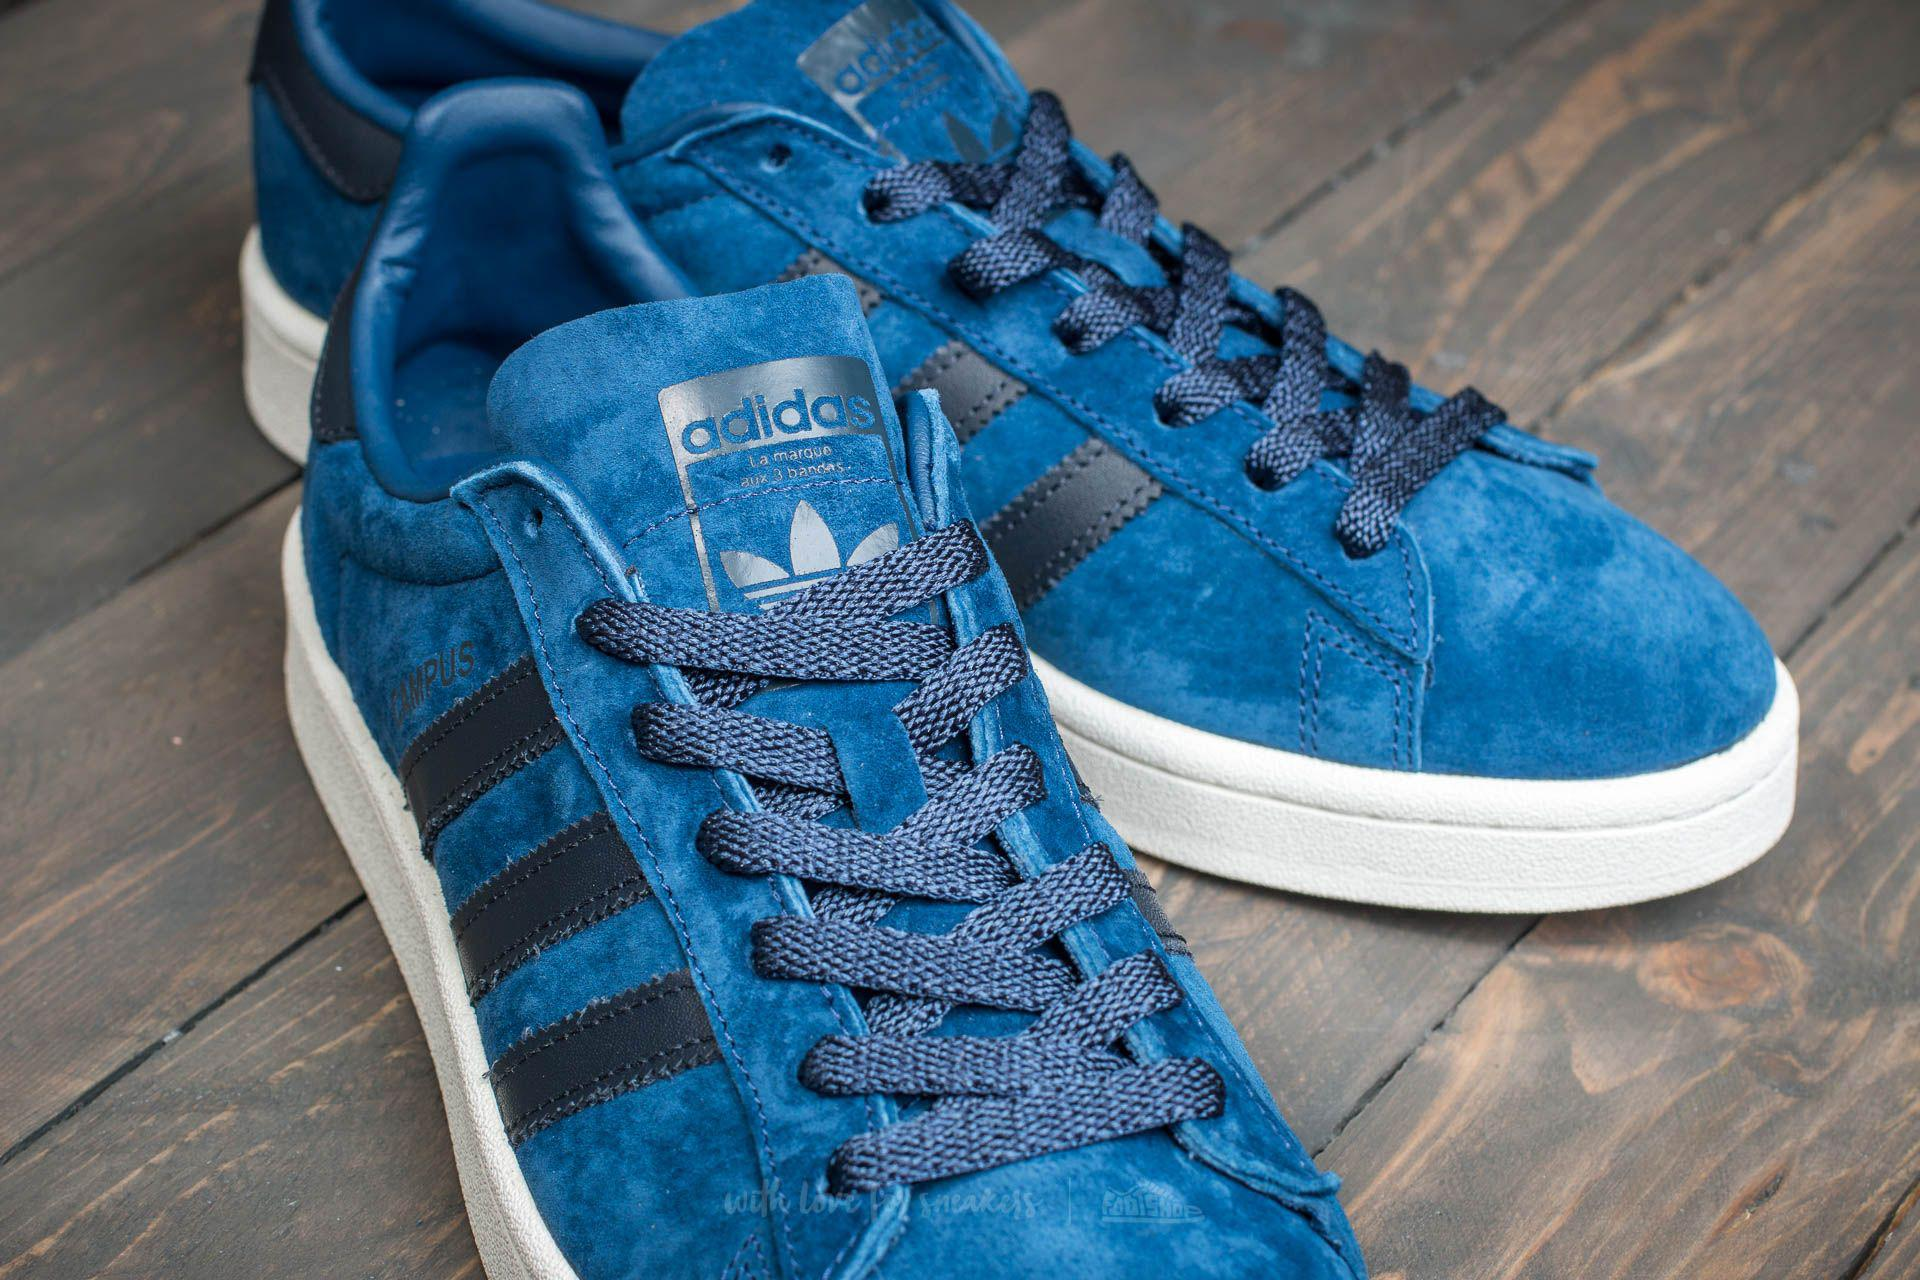 separation shoes 5100b 14680 Lyst - adidas Originals Adidas Campus Mystery Blue Night Nav